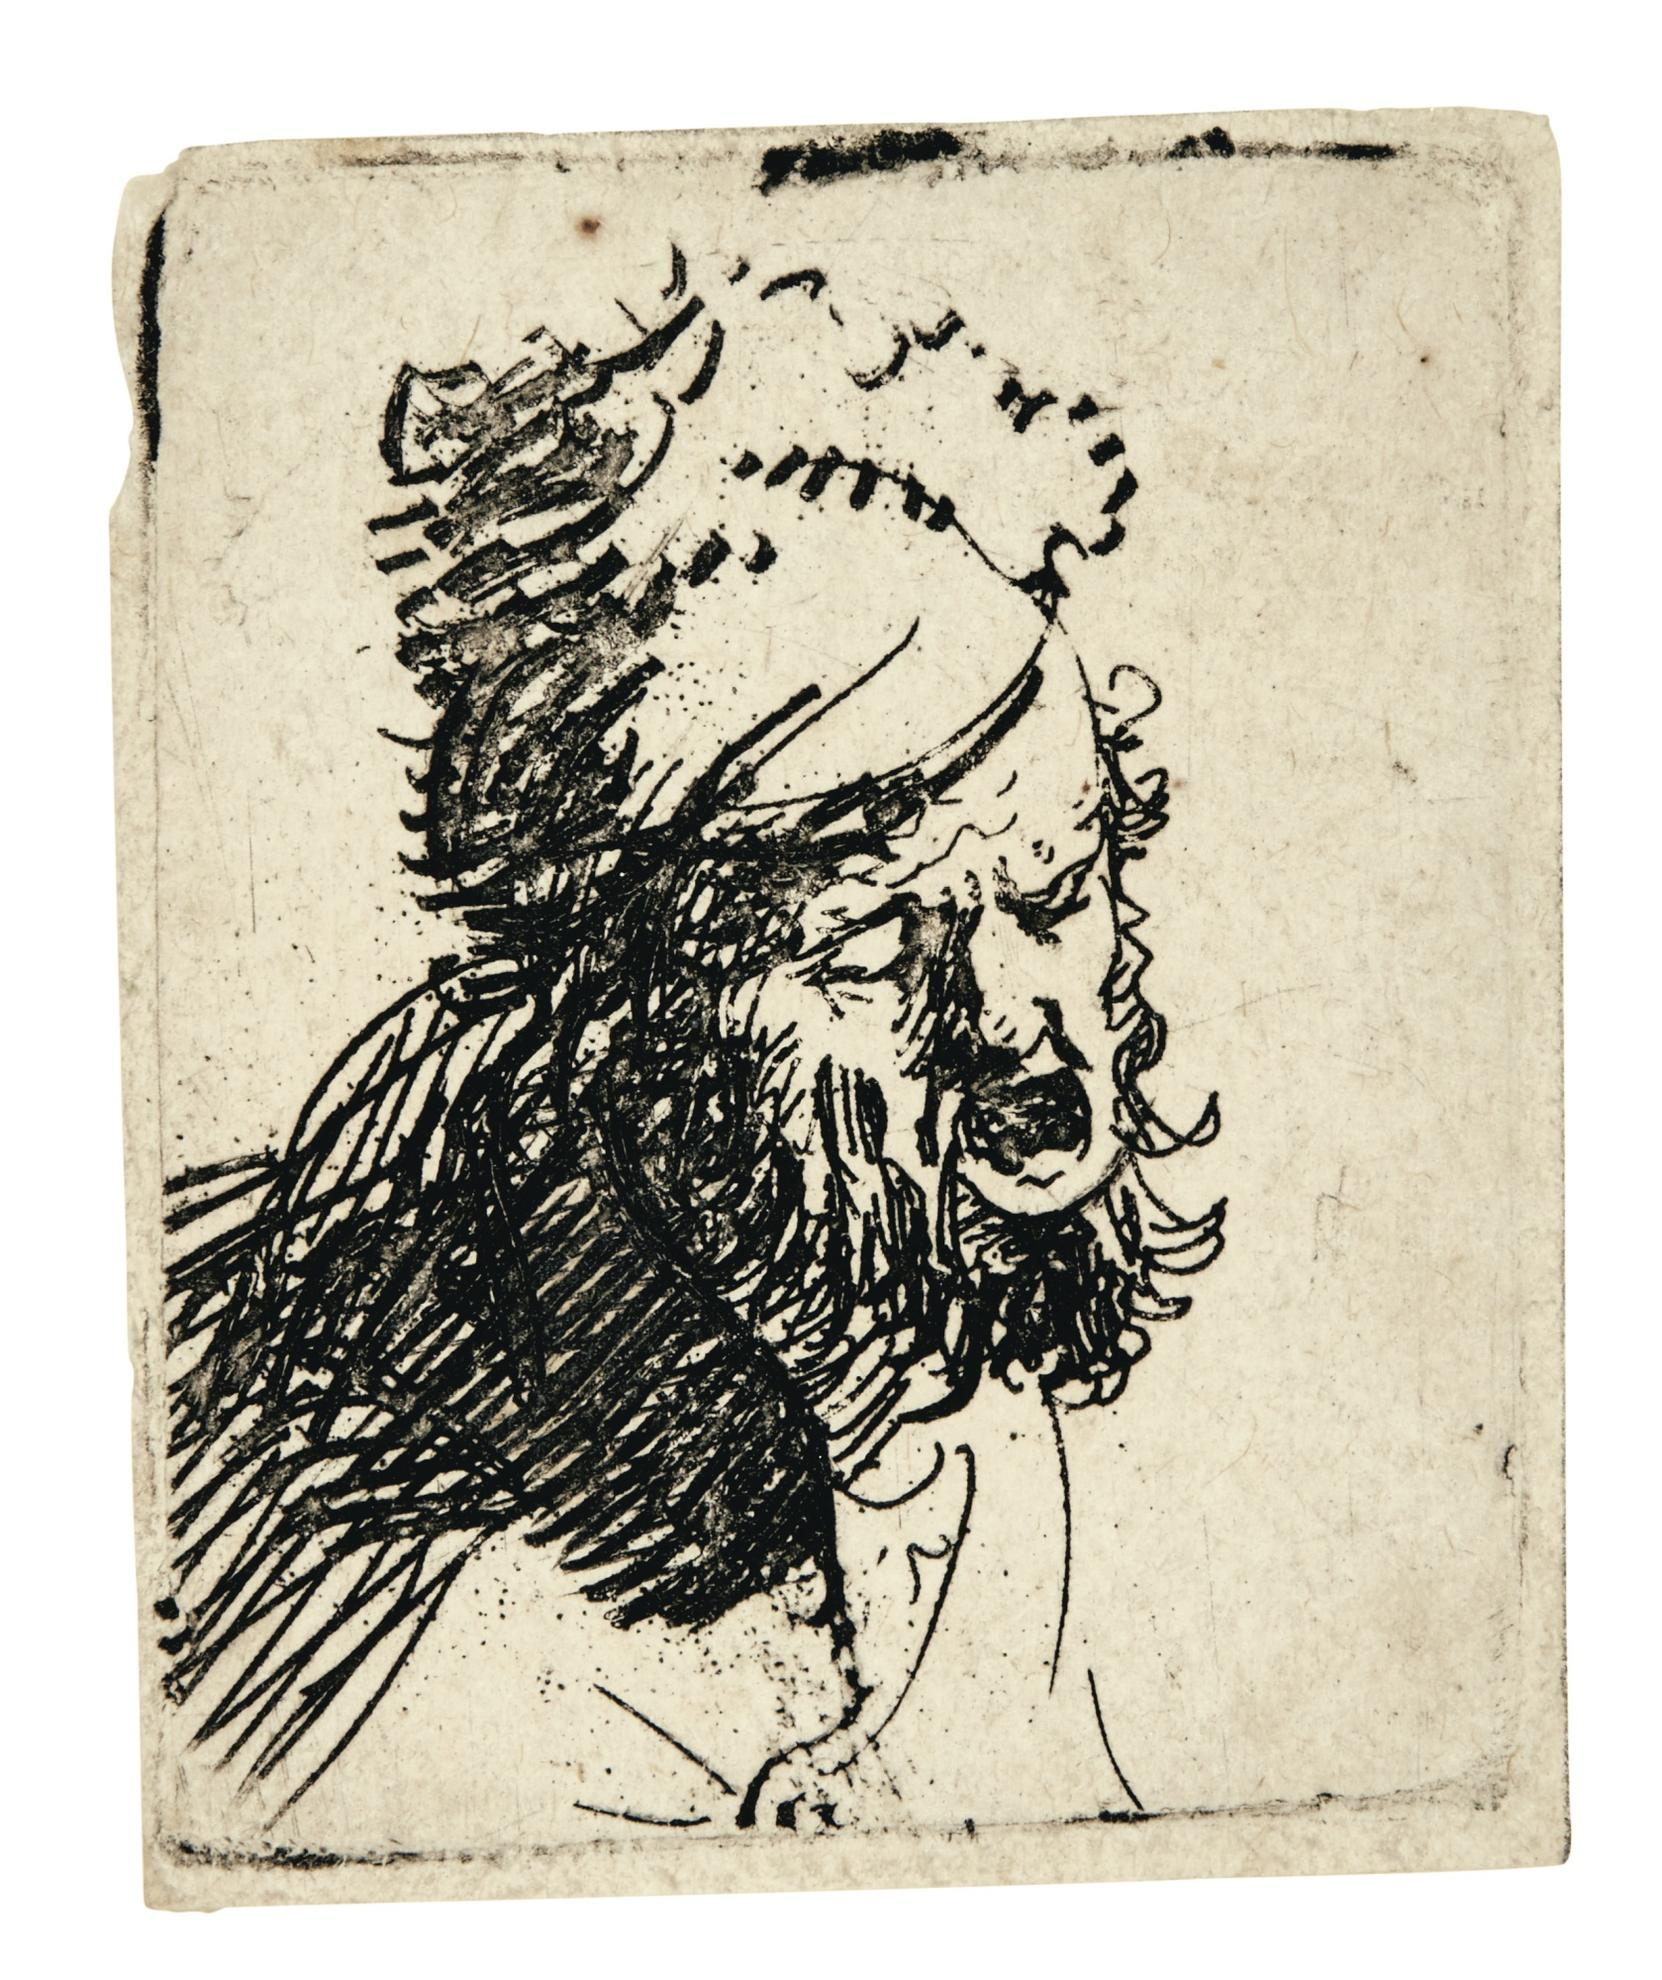 Rembrandt van Rijn-Head Of A Man In A Fur Cap, Crying Out (B., Holl. 327; New Holl. 36; H. 37)-1629